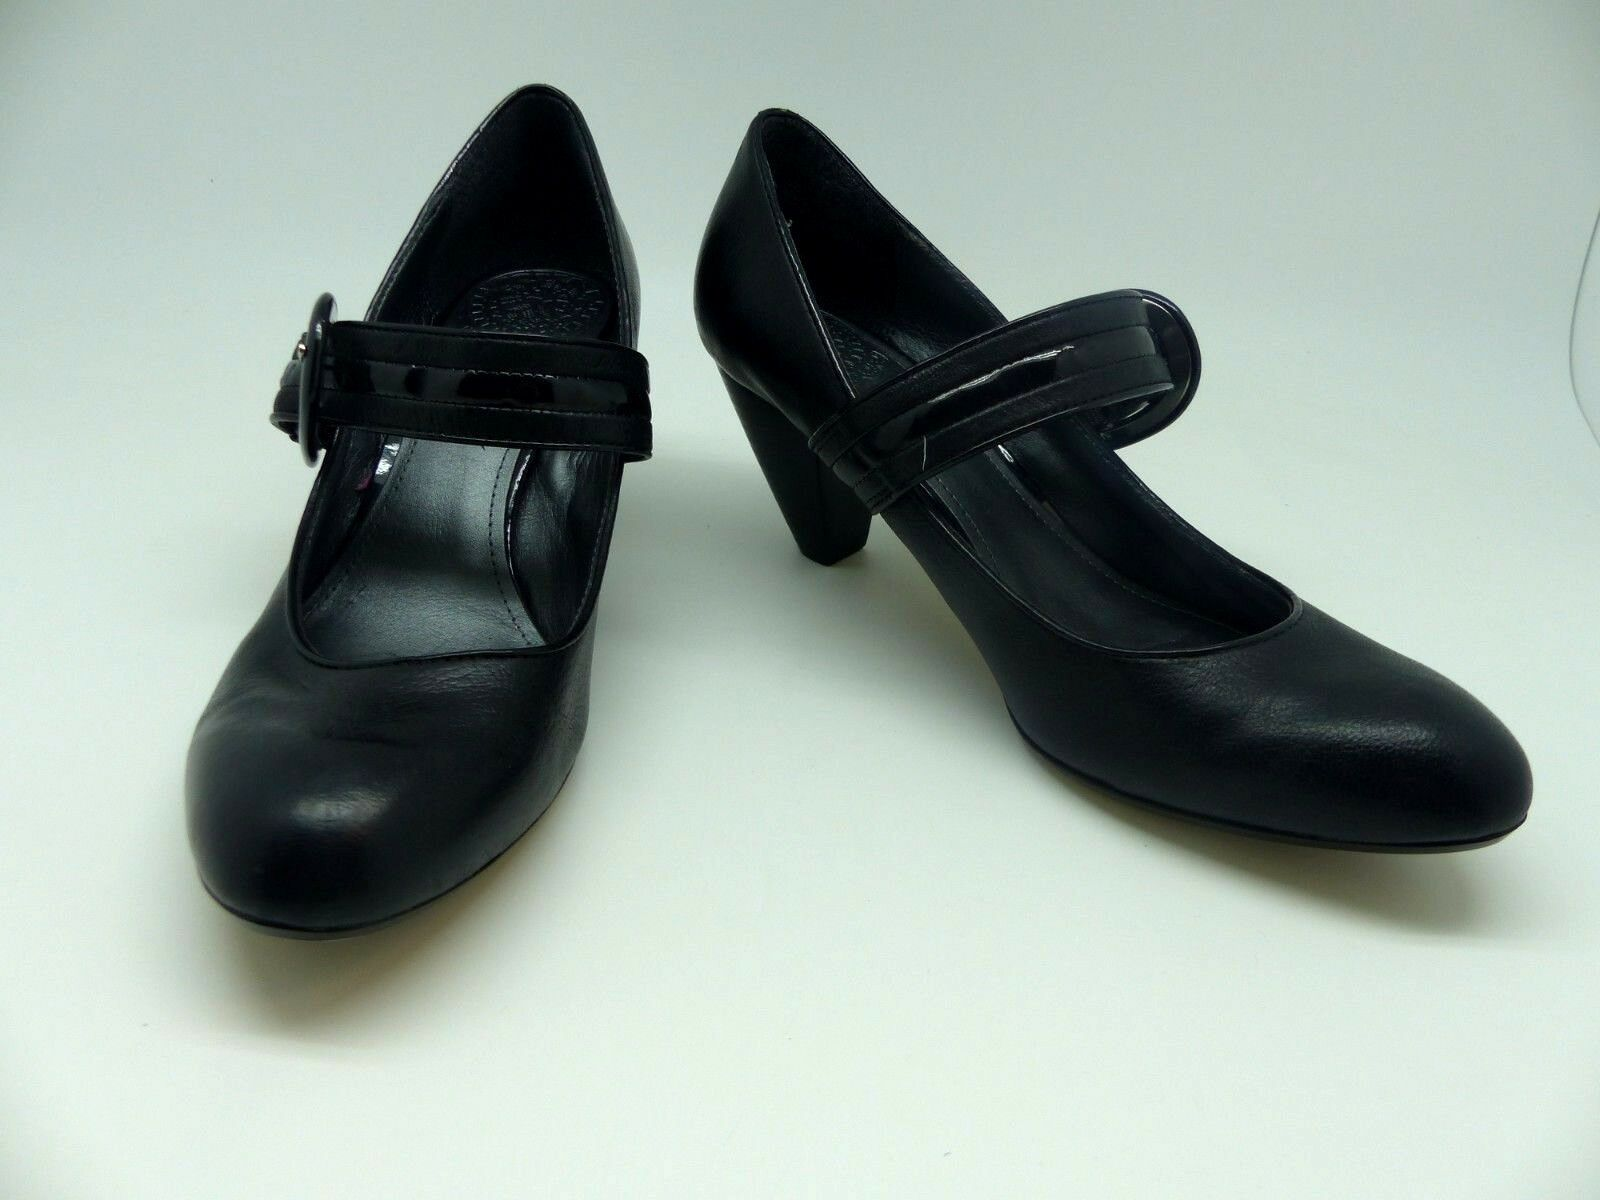 Clarks Black Mary Jane Heels UK 5.5D Good condition